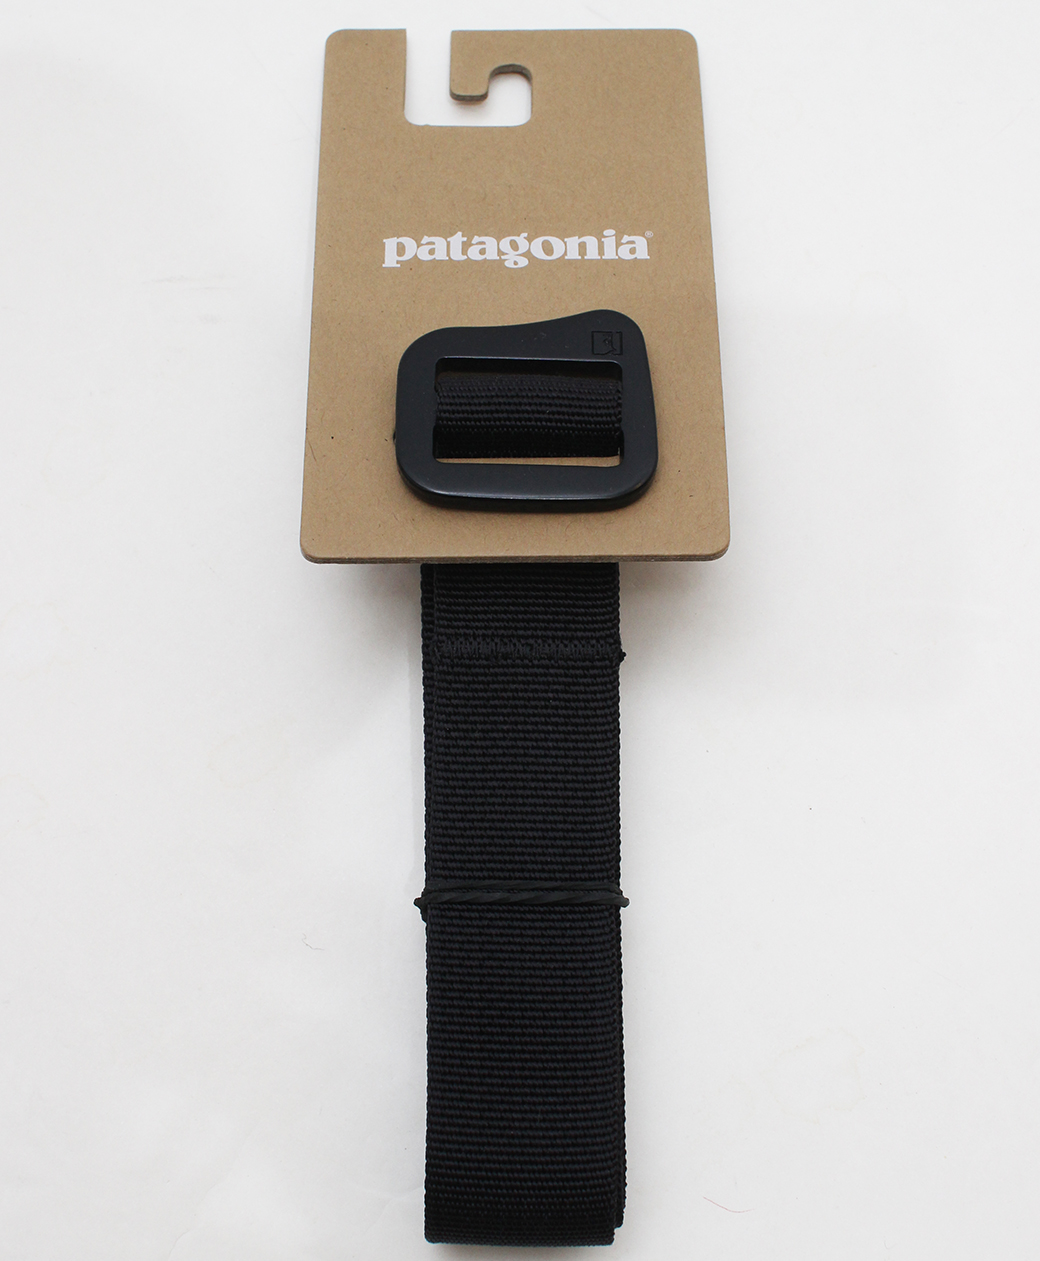 patagonia Friction Belt(BLK)